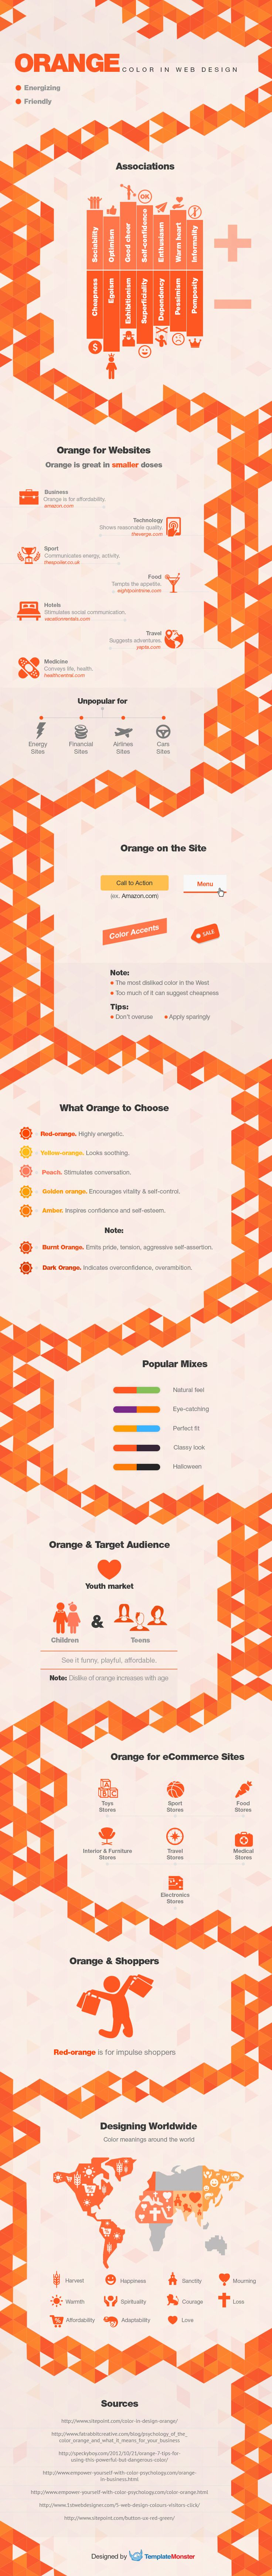 Learn about the most positive and controversial color in web design. Orange color anatomy infographics.